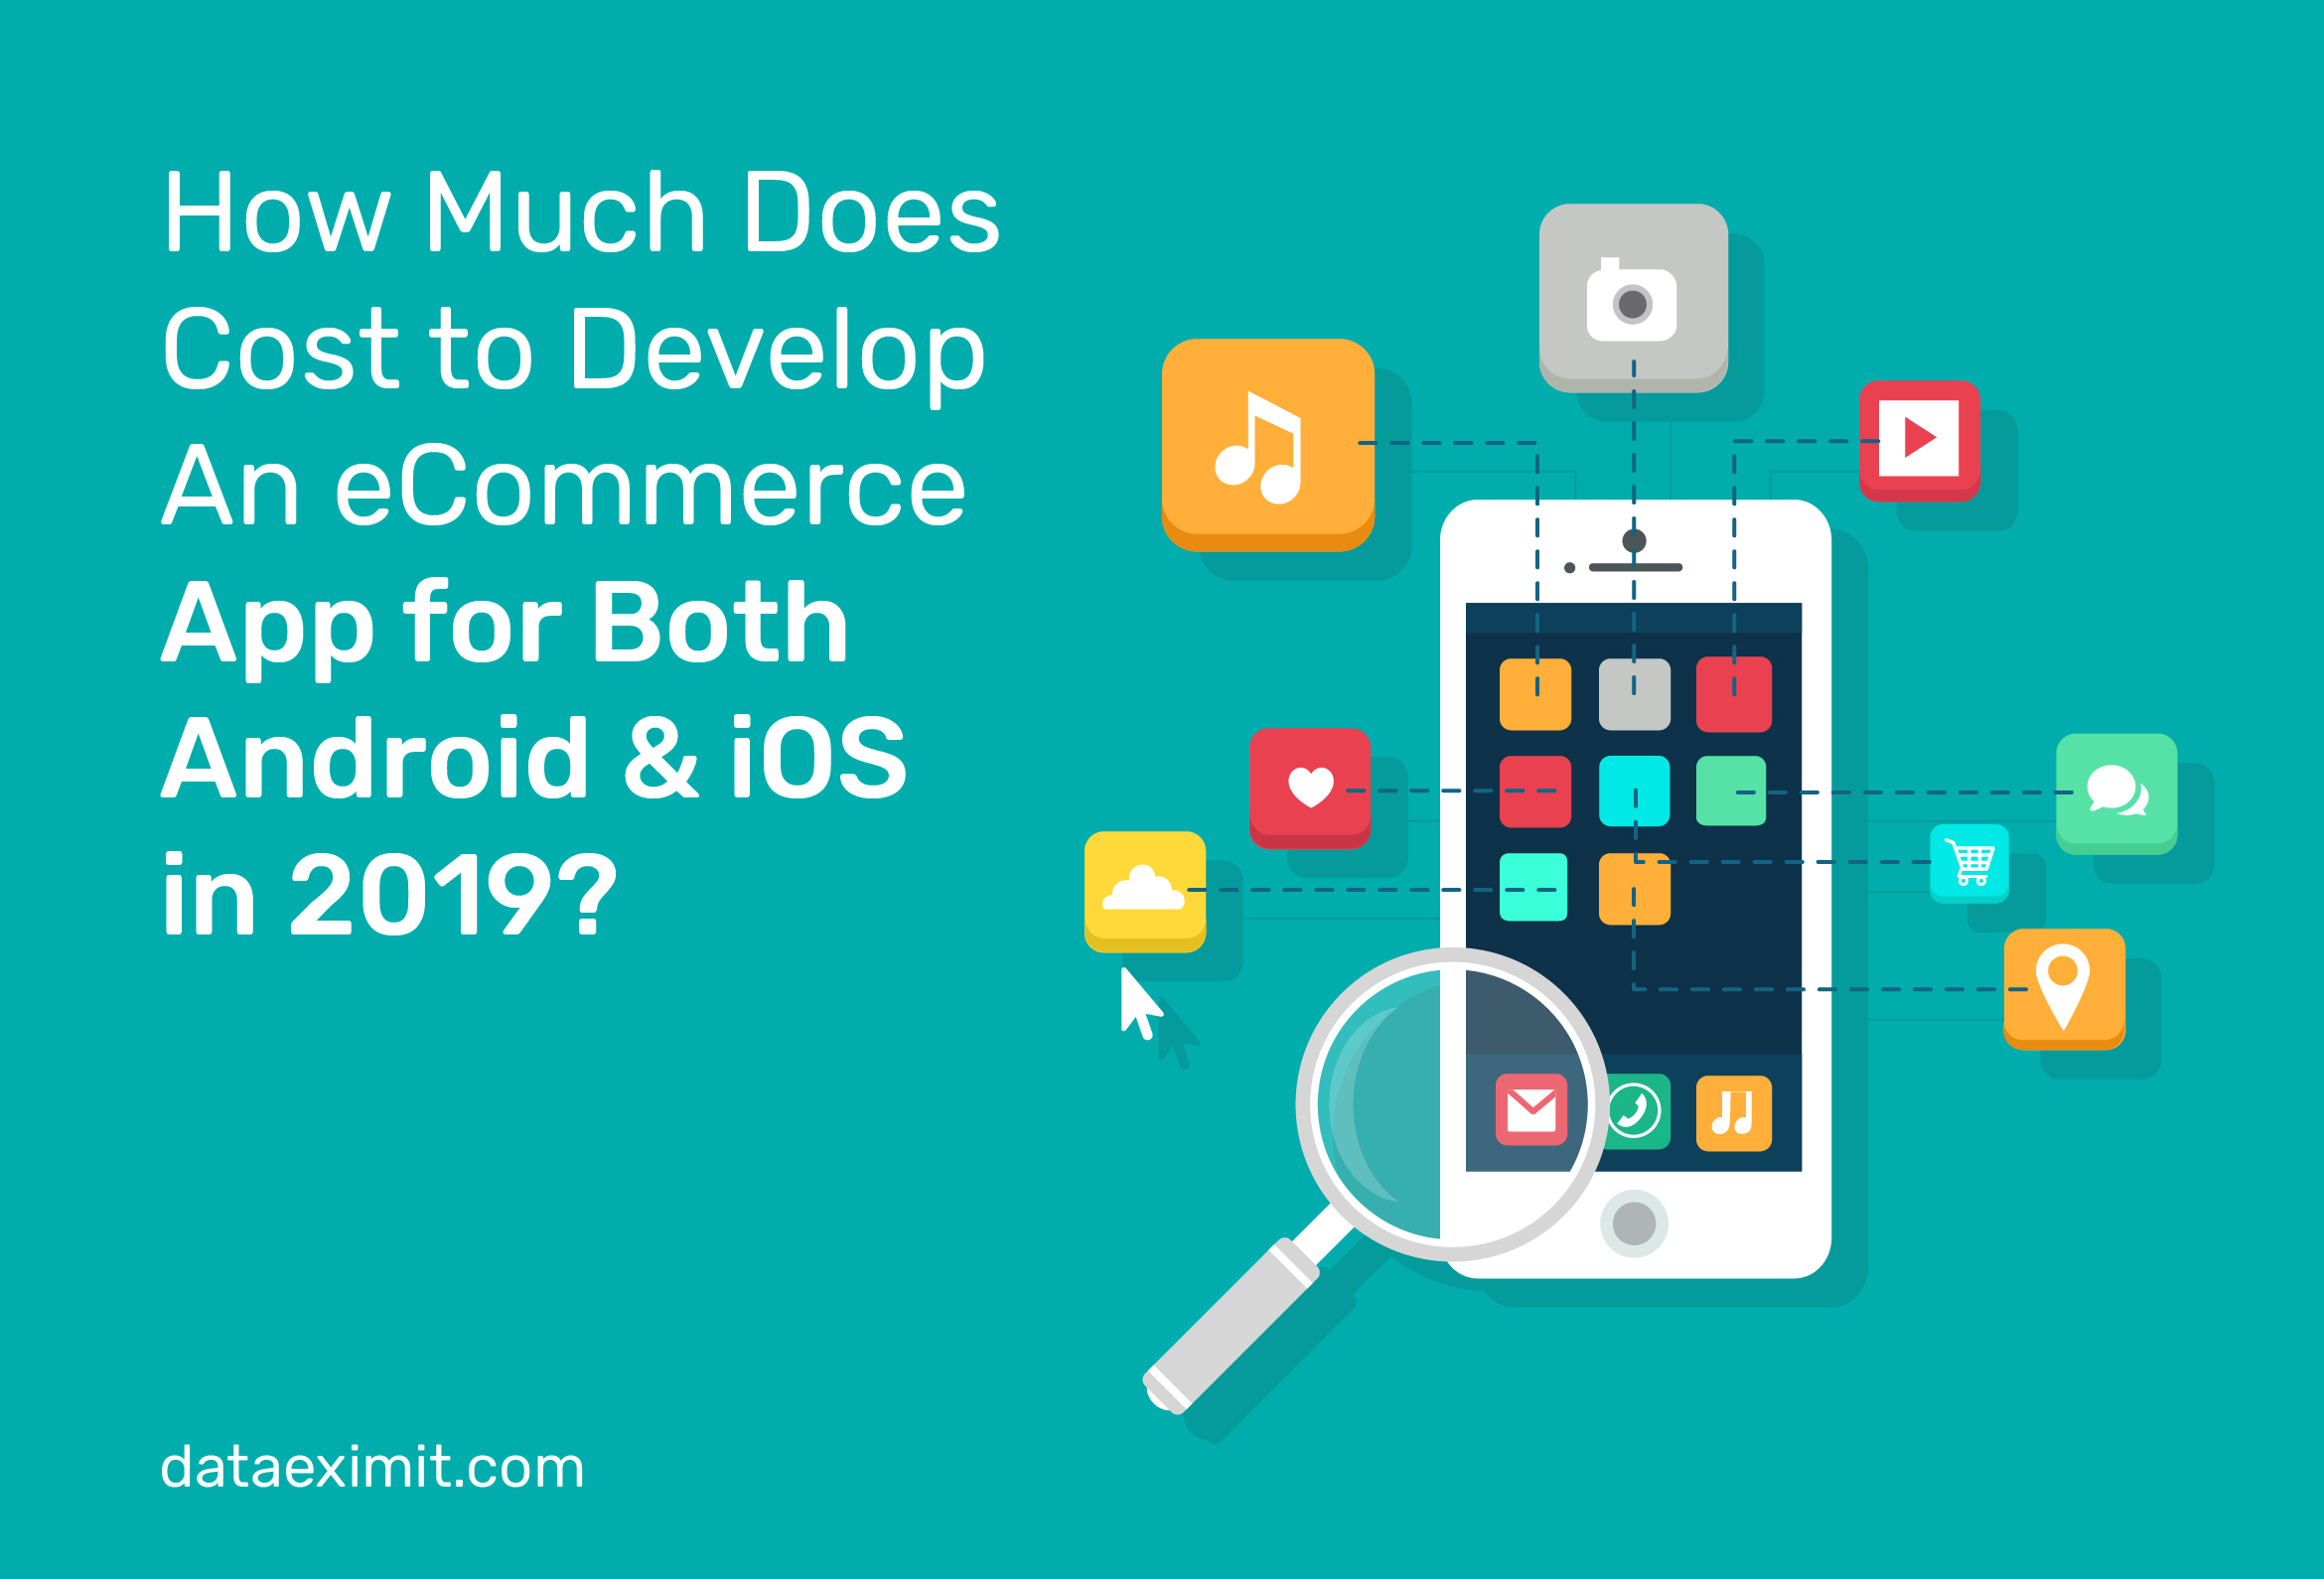 How Much Does Cost To Develop An E-commerce App For Both Android & iOS In 2019_